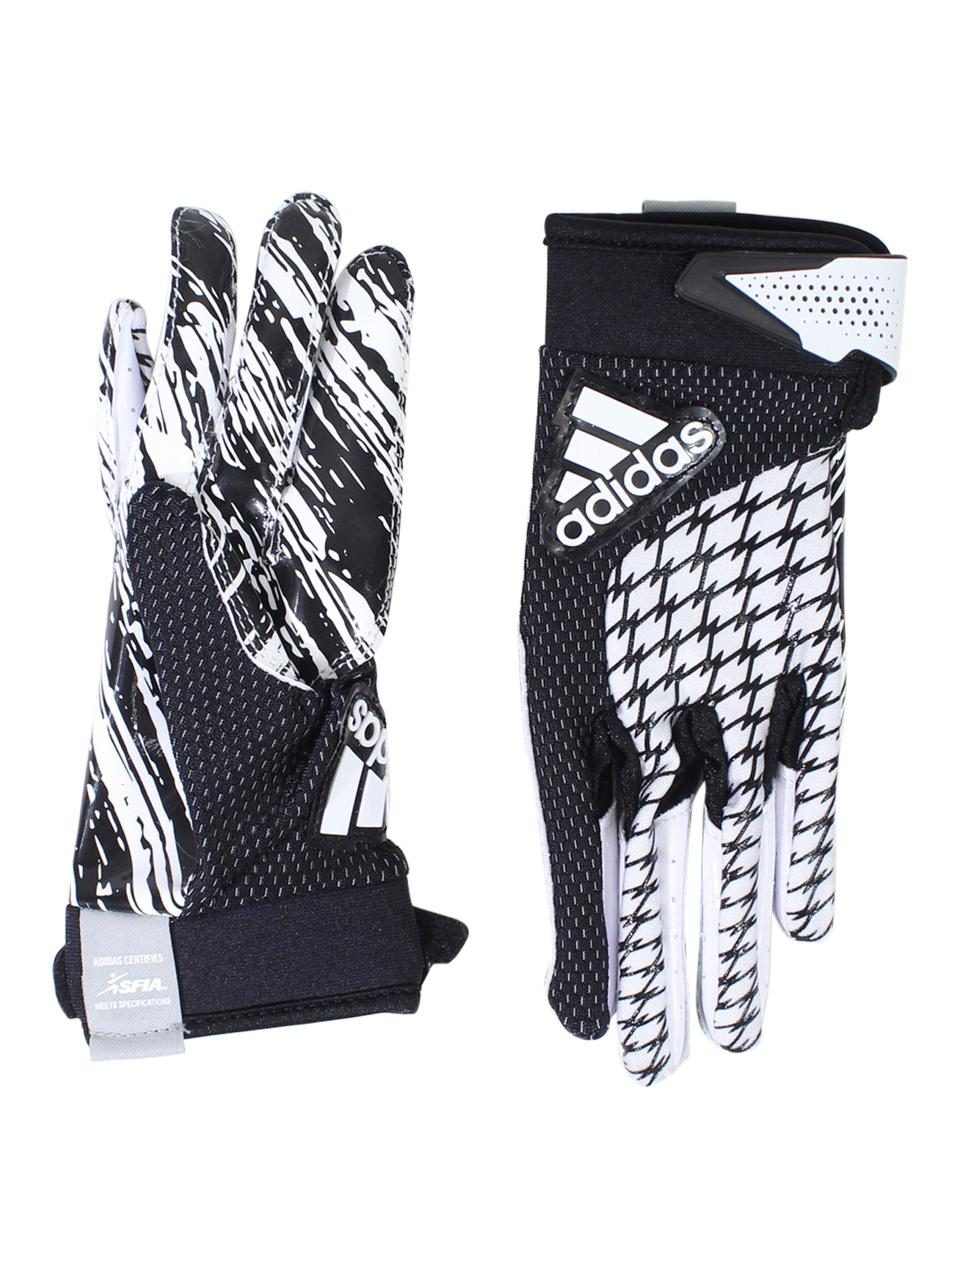 Adidas Boy's Youth adiFAST 2.0 Padded Football Gloves